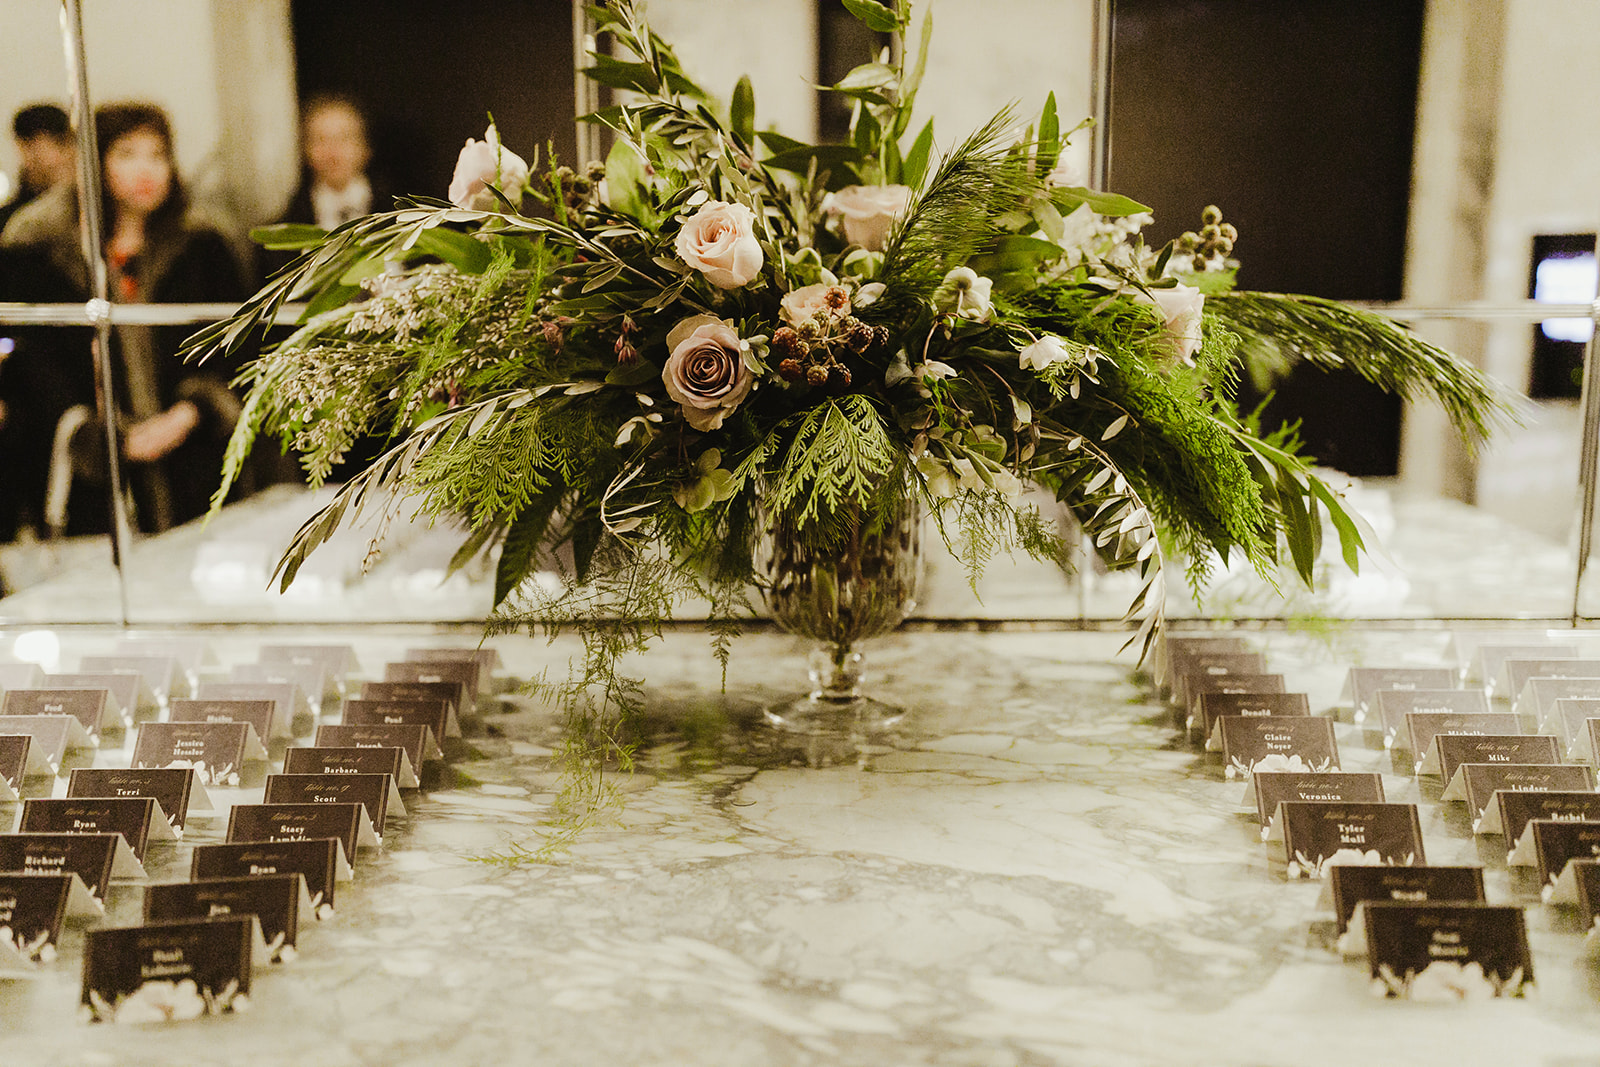 A beautiful winter floral arrangement